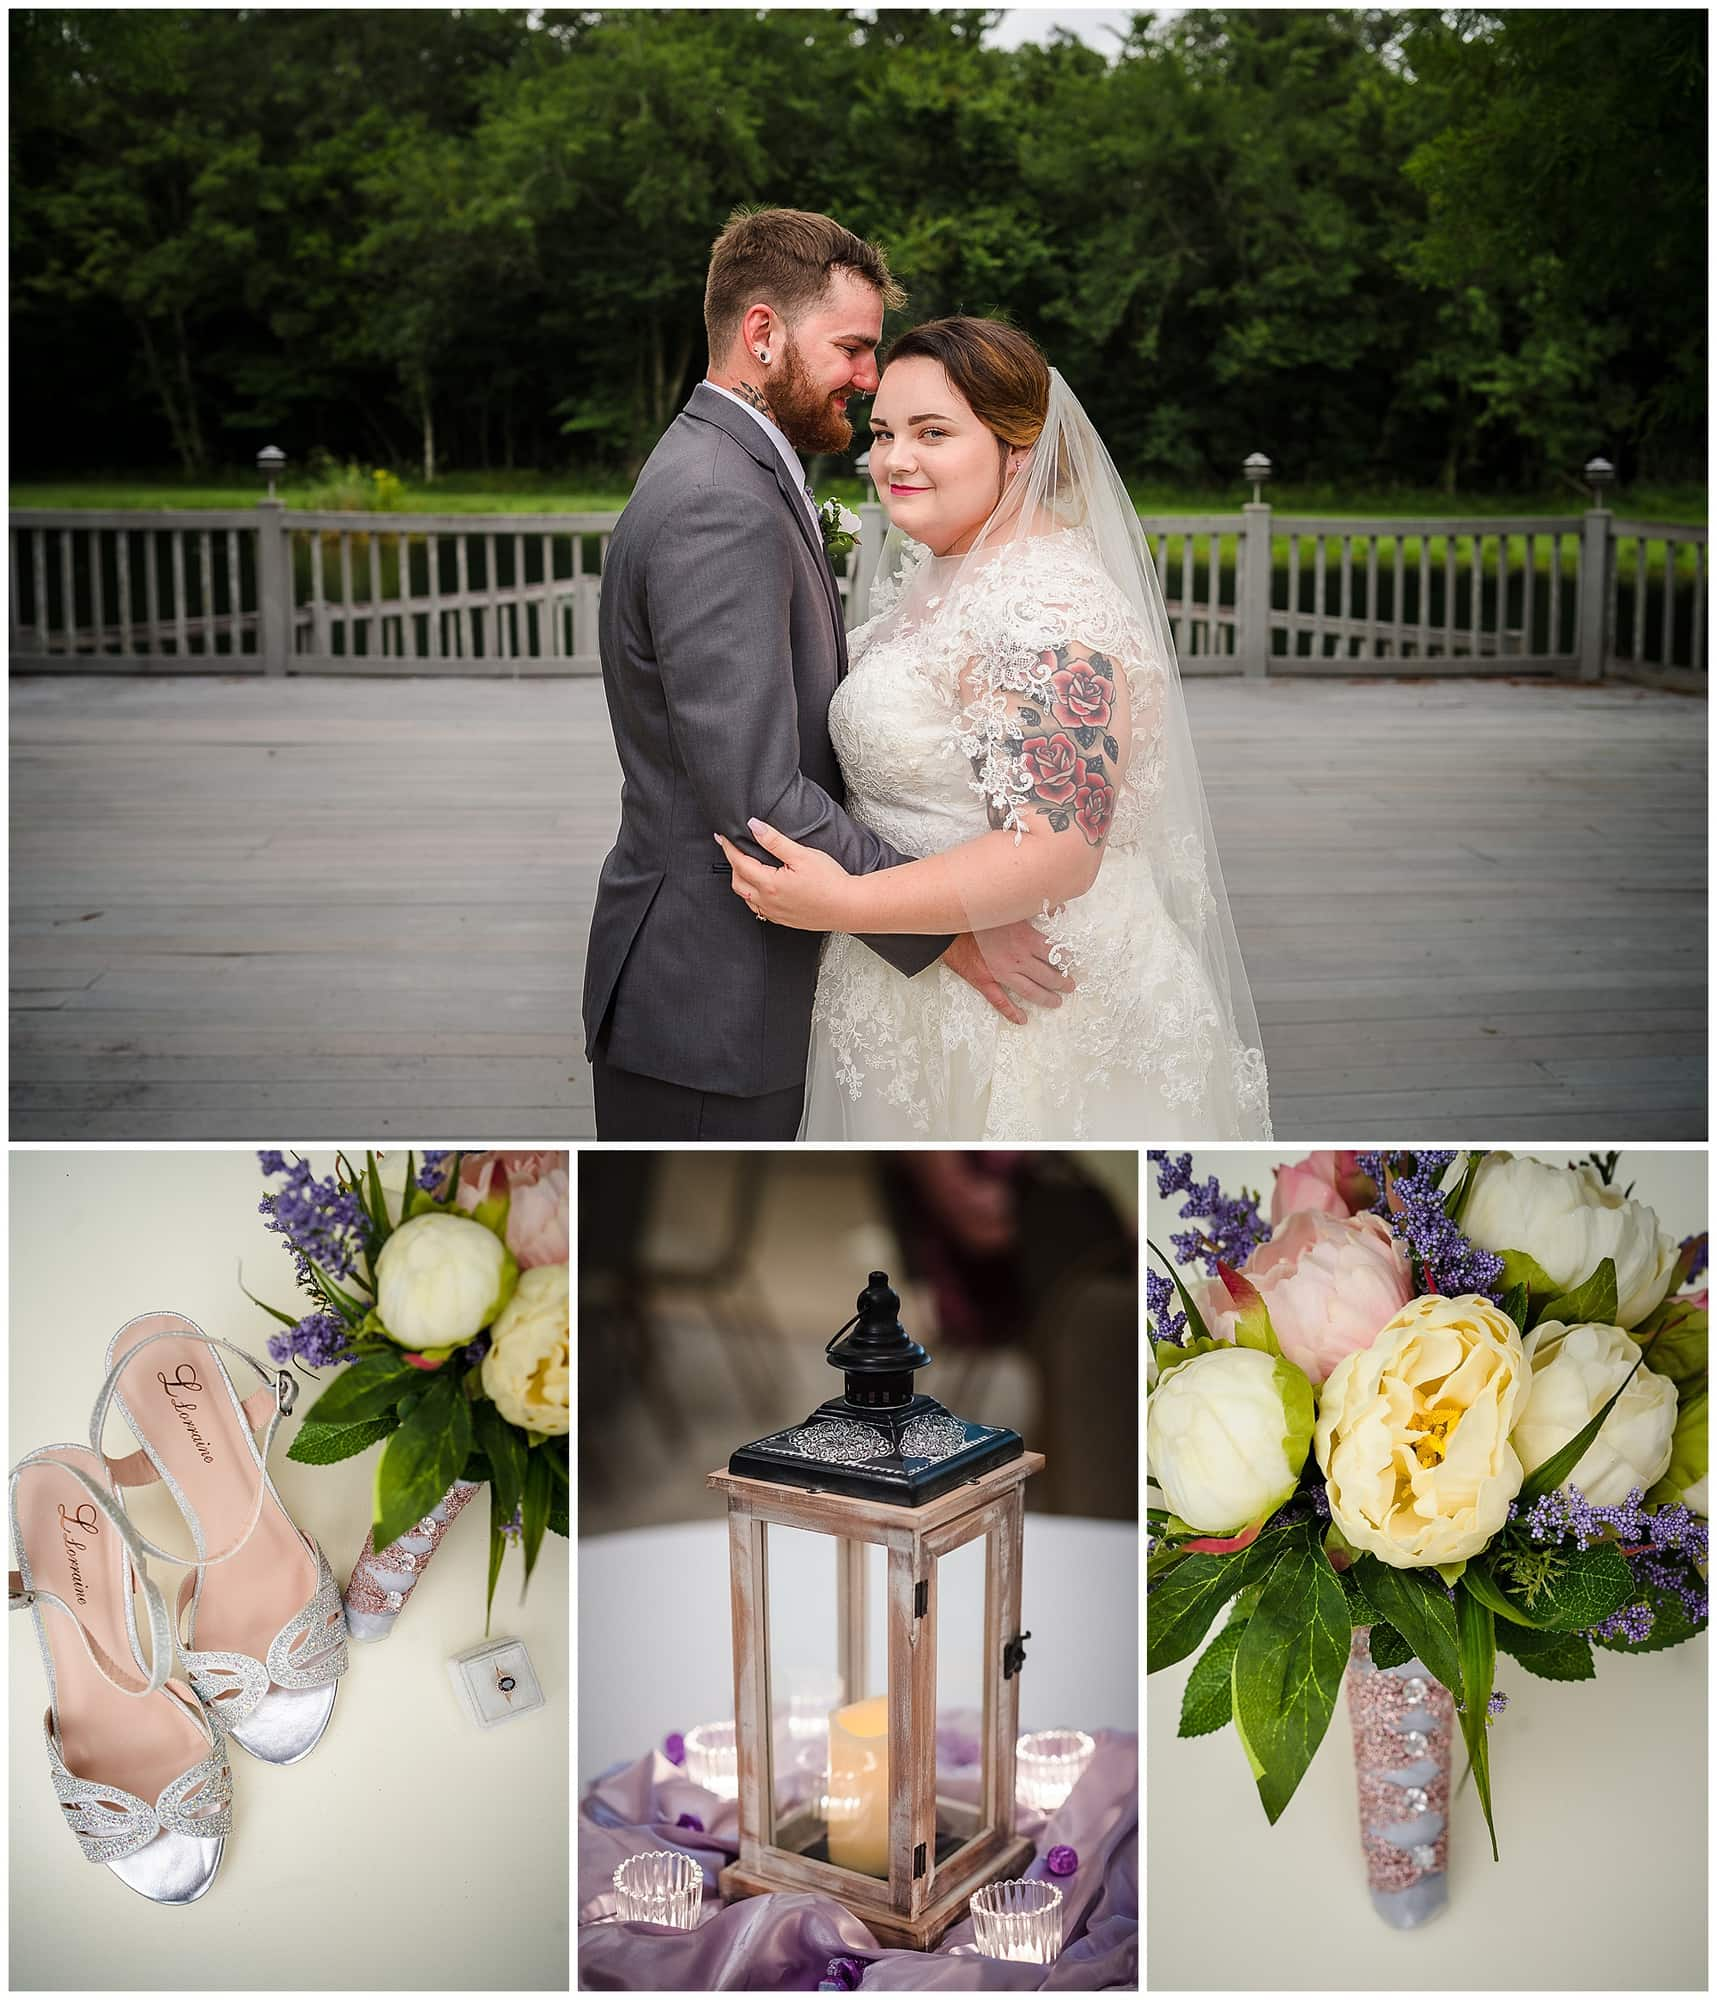 couple posing and wedding details at Cypress Columns Louisiana wedding venue